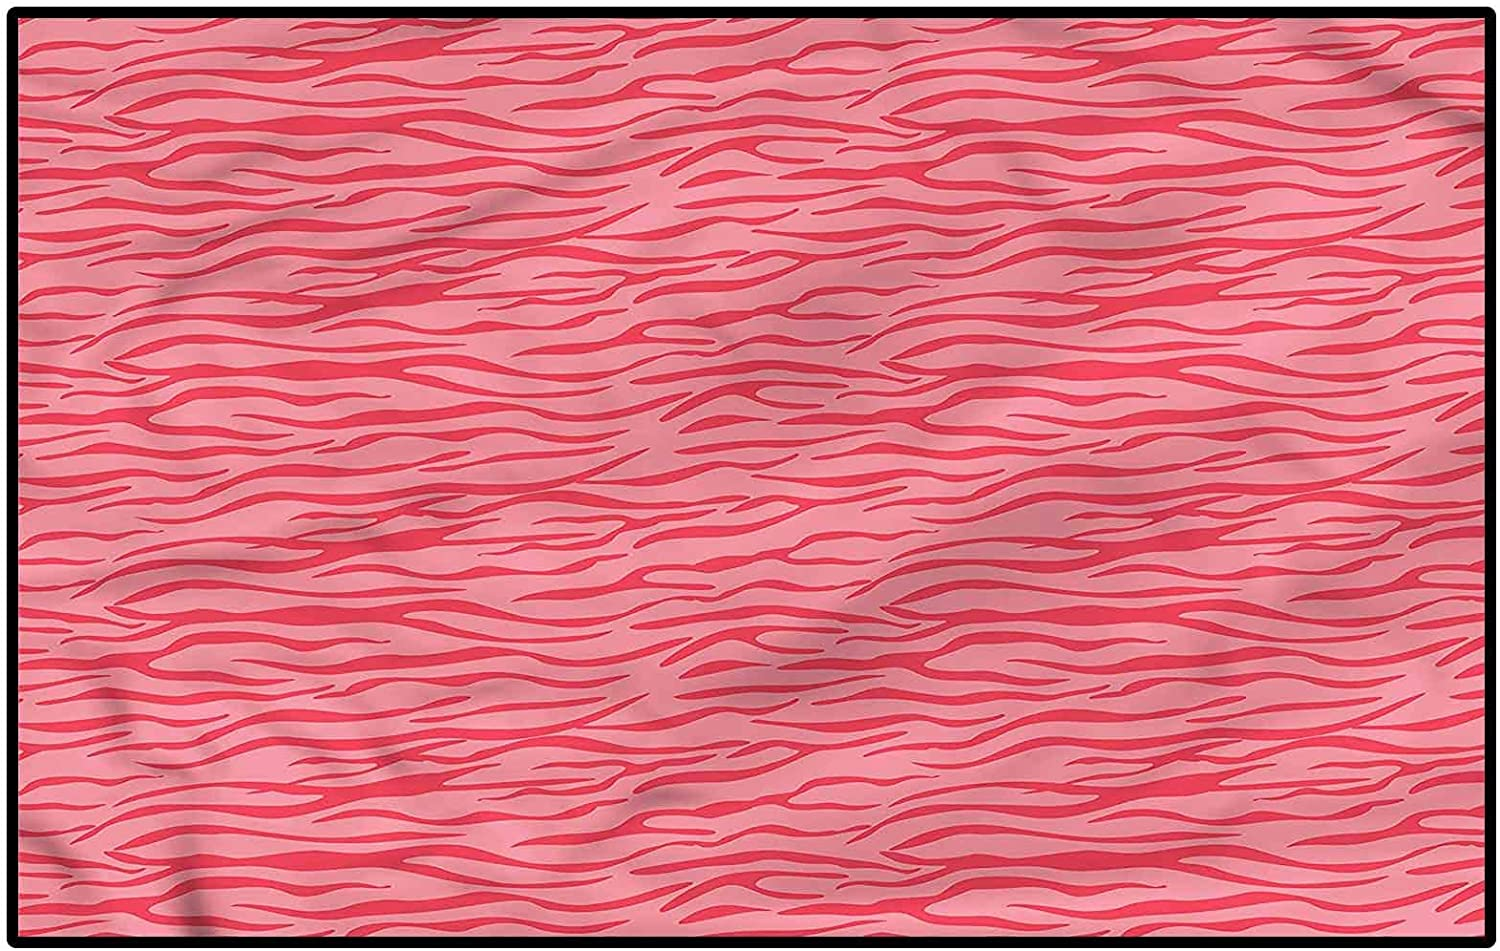 Pink Zebra Outdoor Rugs for patios Kitchen Rugs and mats Wavy Stripes Safari for Living Room Bench Kids Princess Room Decor Kids 6.5 x 9.8 Ft